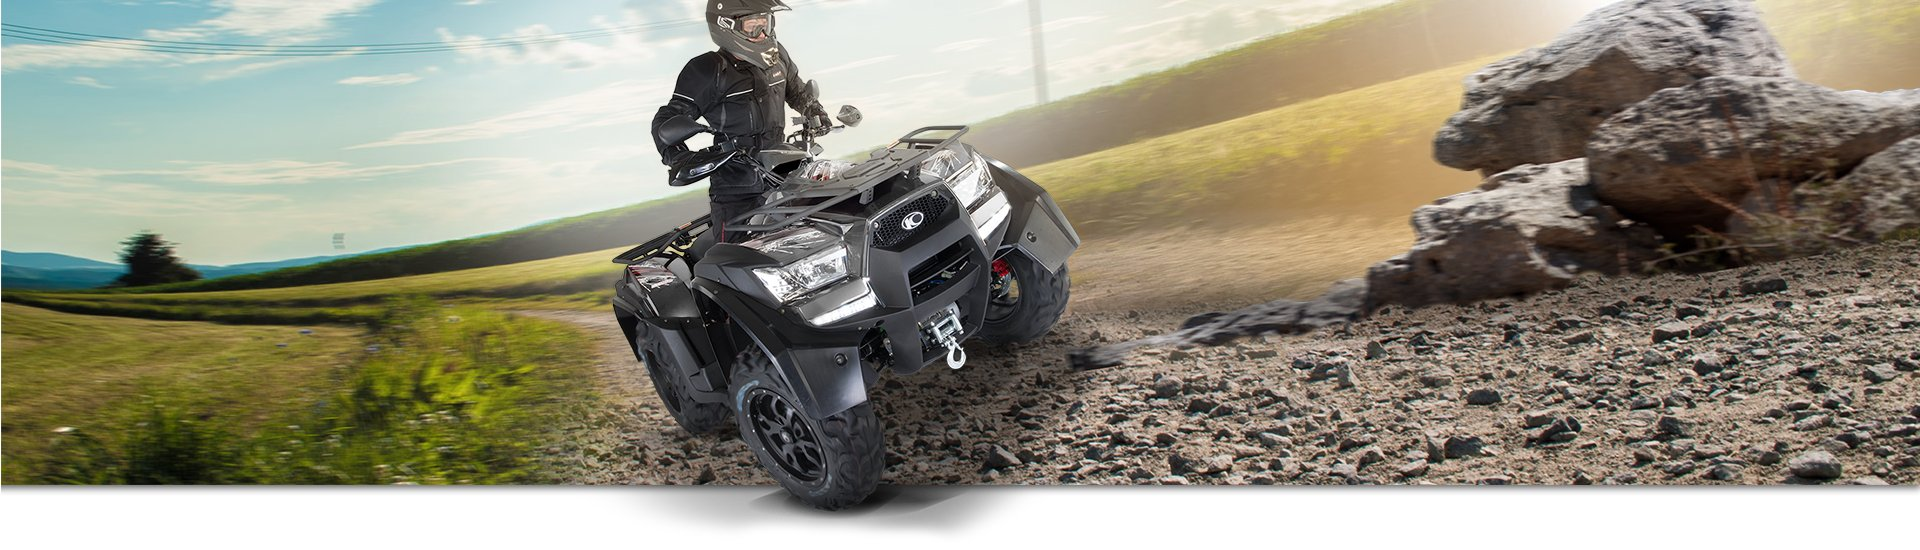 KYMCO Side by Side